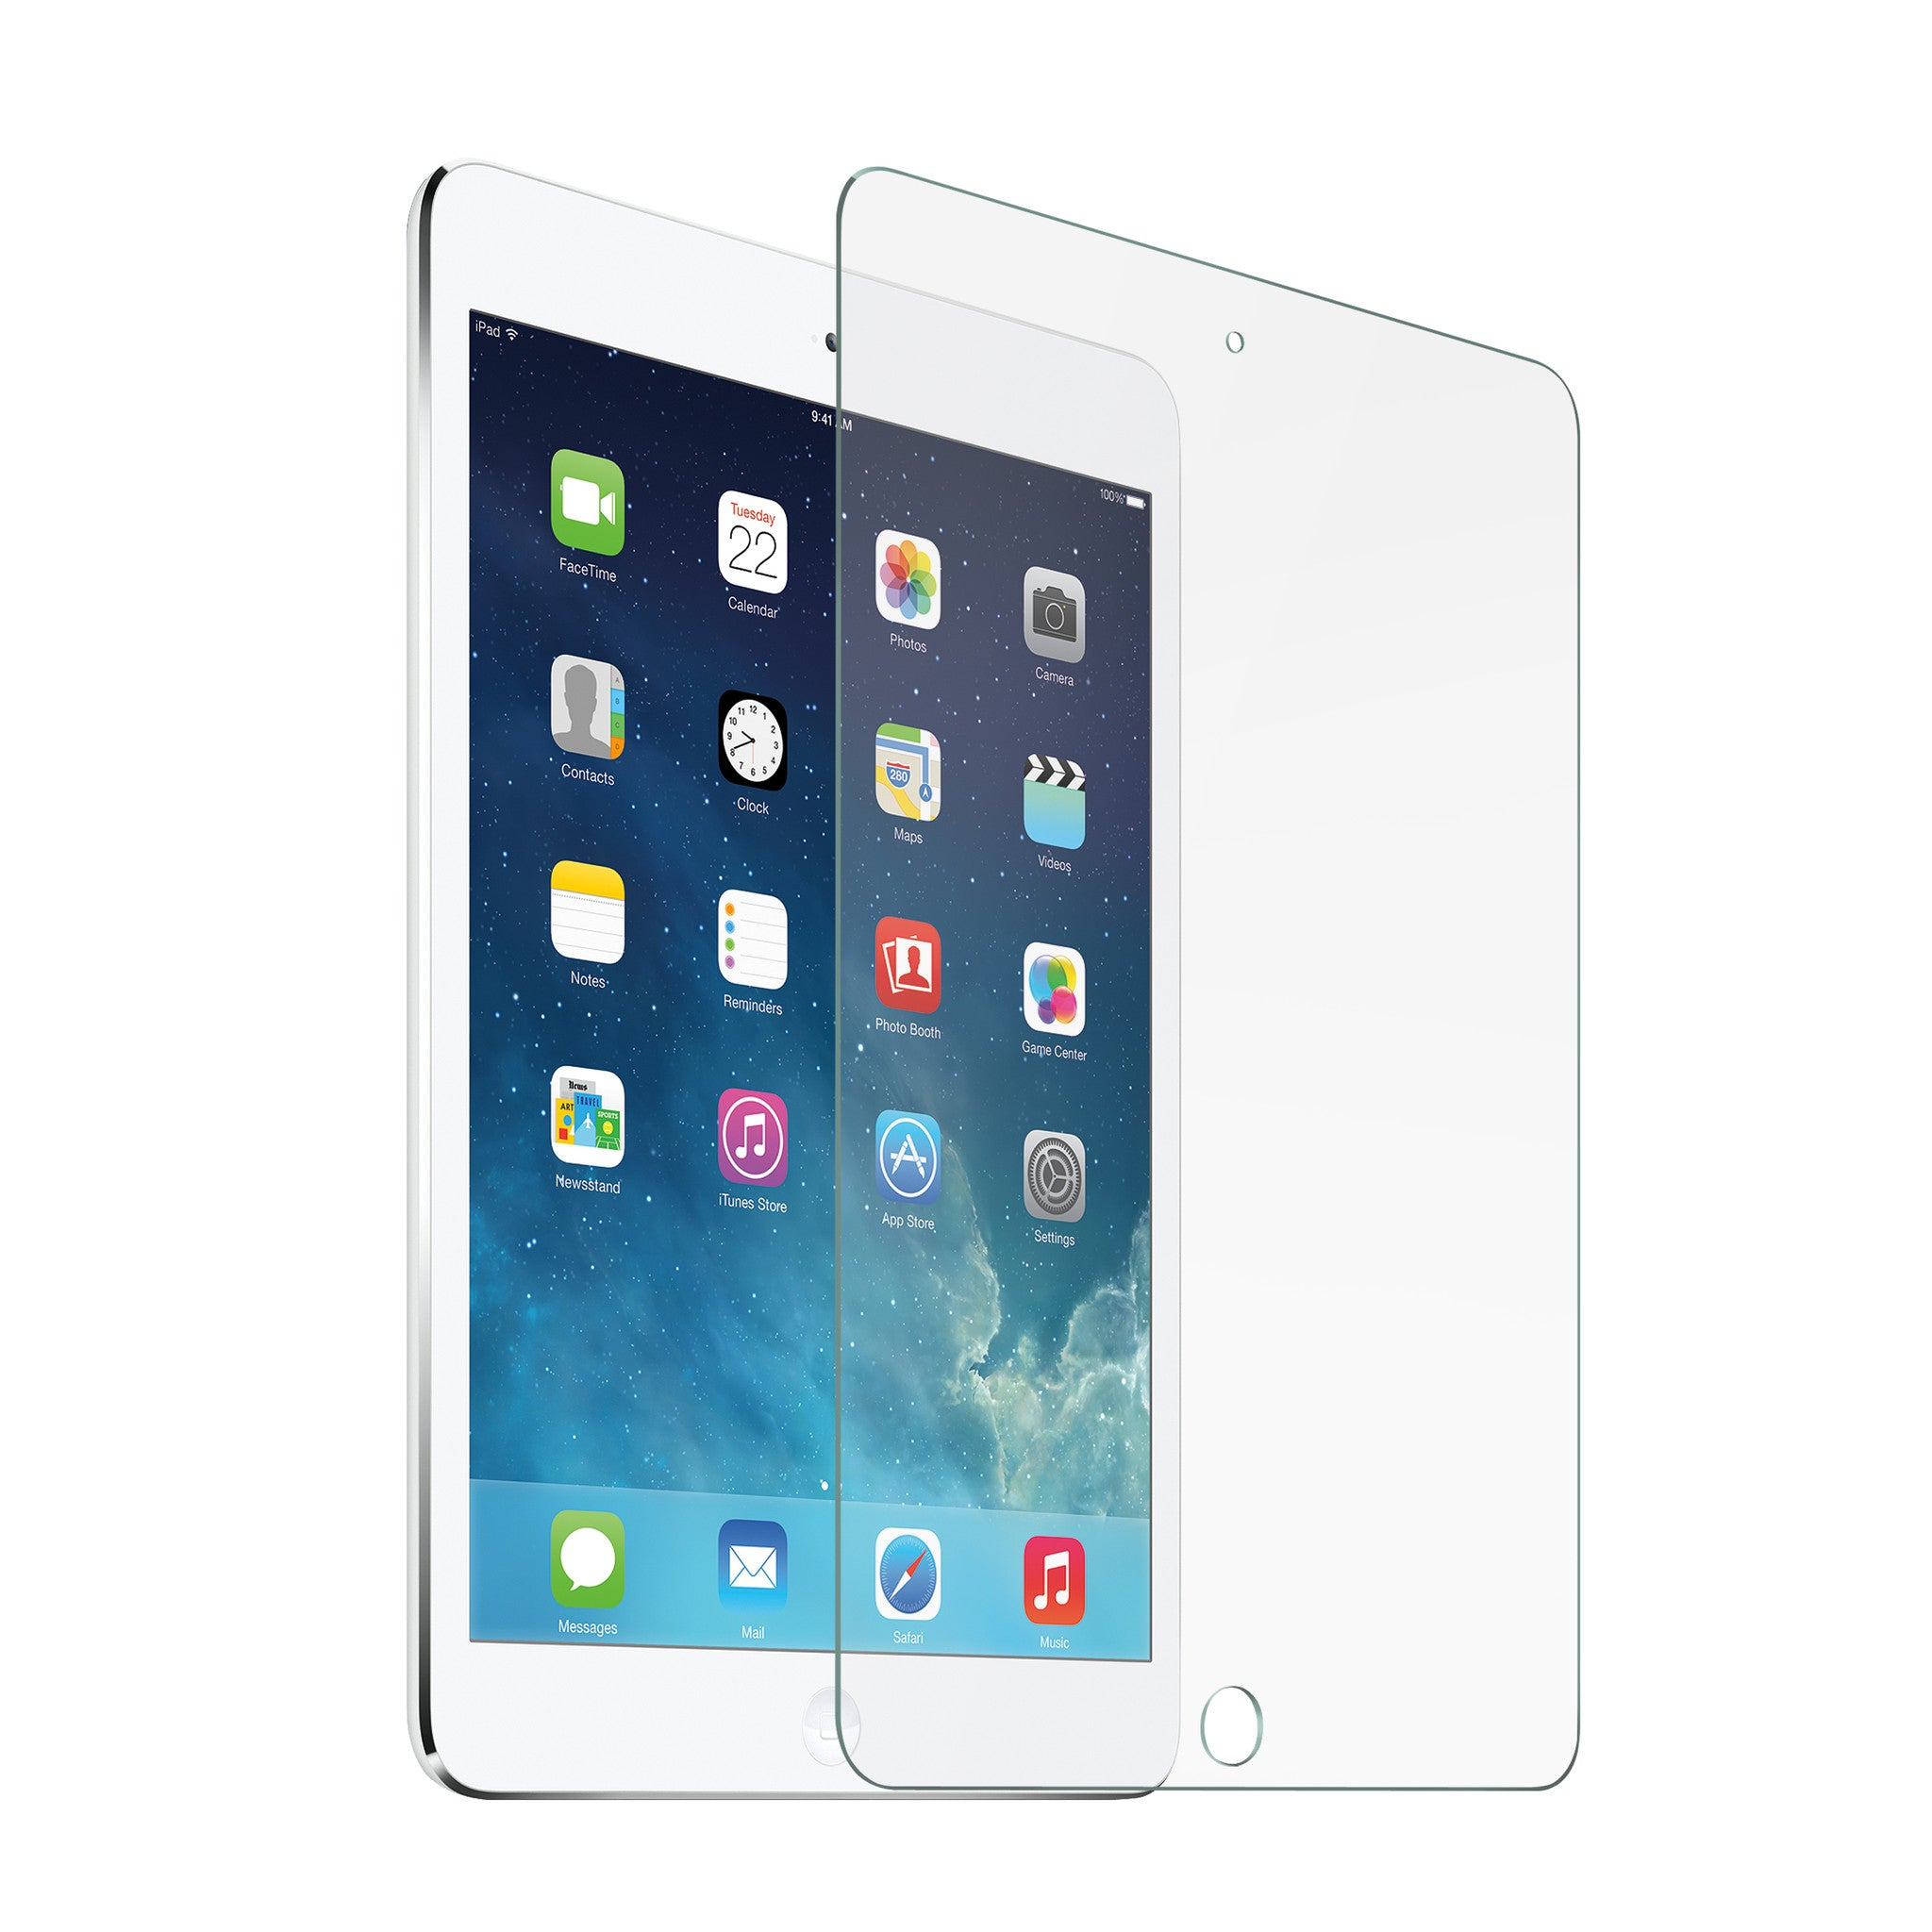 ITG PRO Tempered Glass for iPad Mini & Mini Retina Display - Patchworks Global Inc  - 1